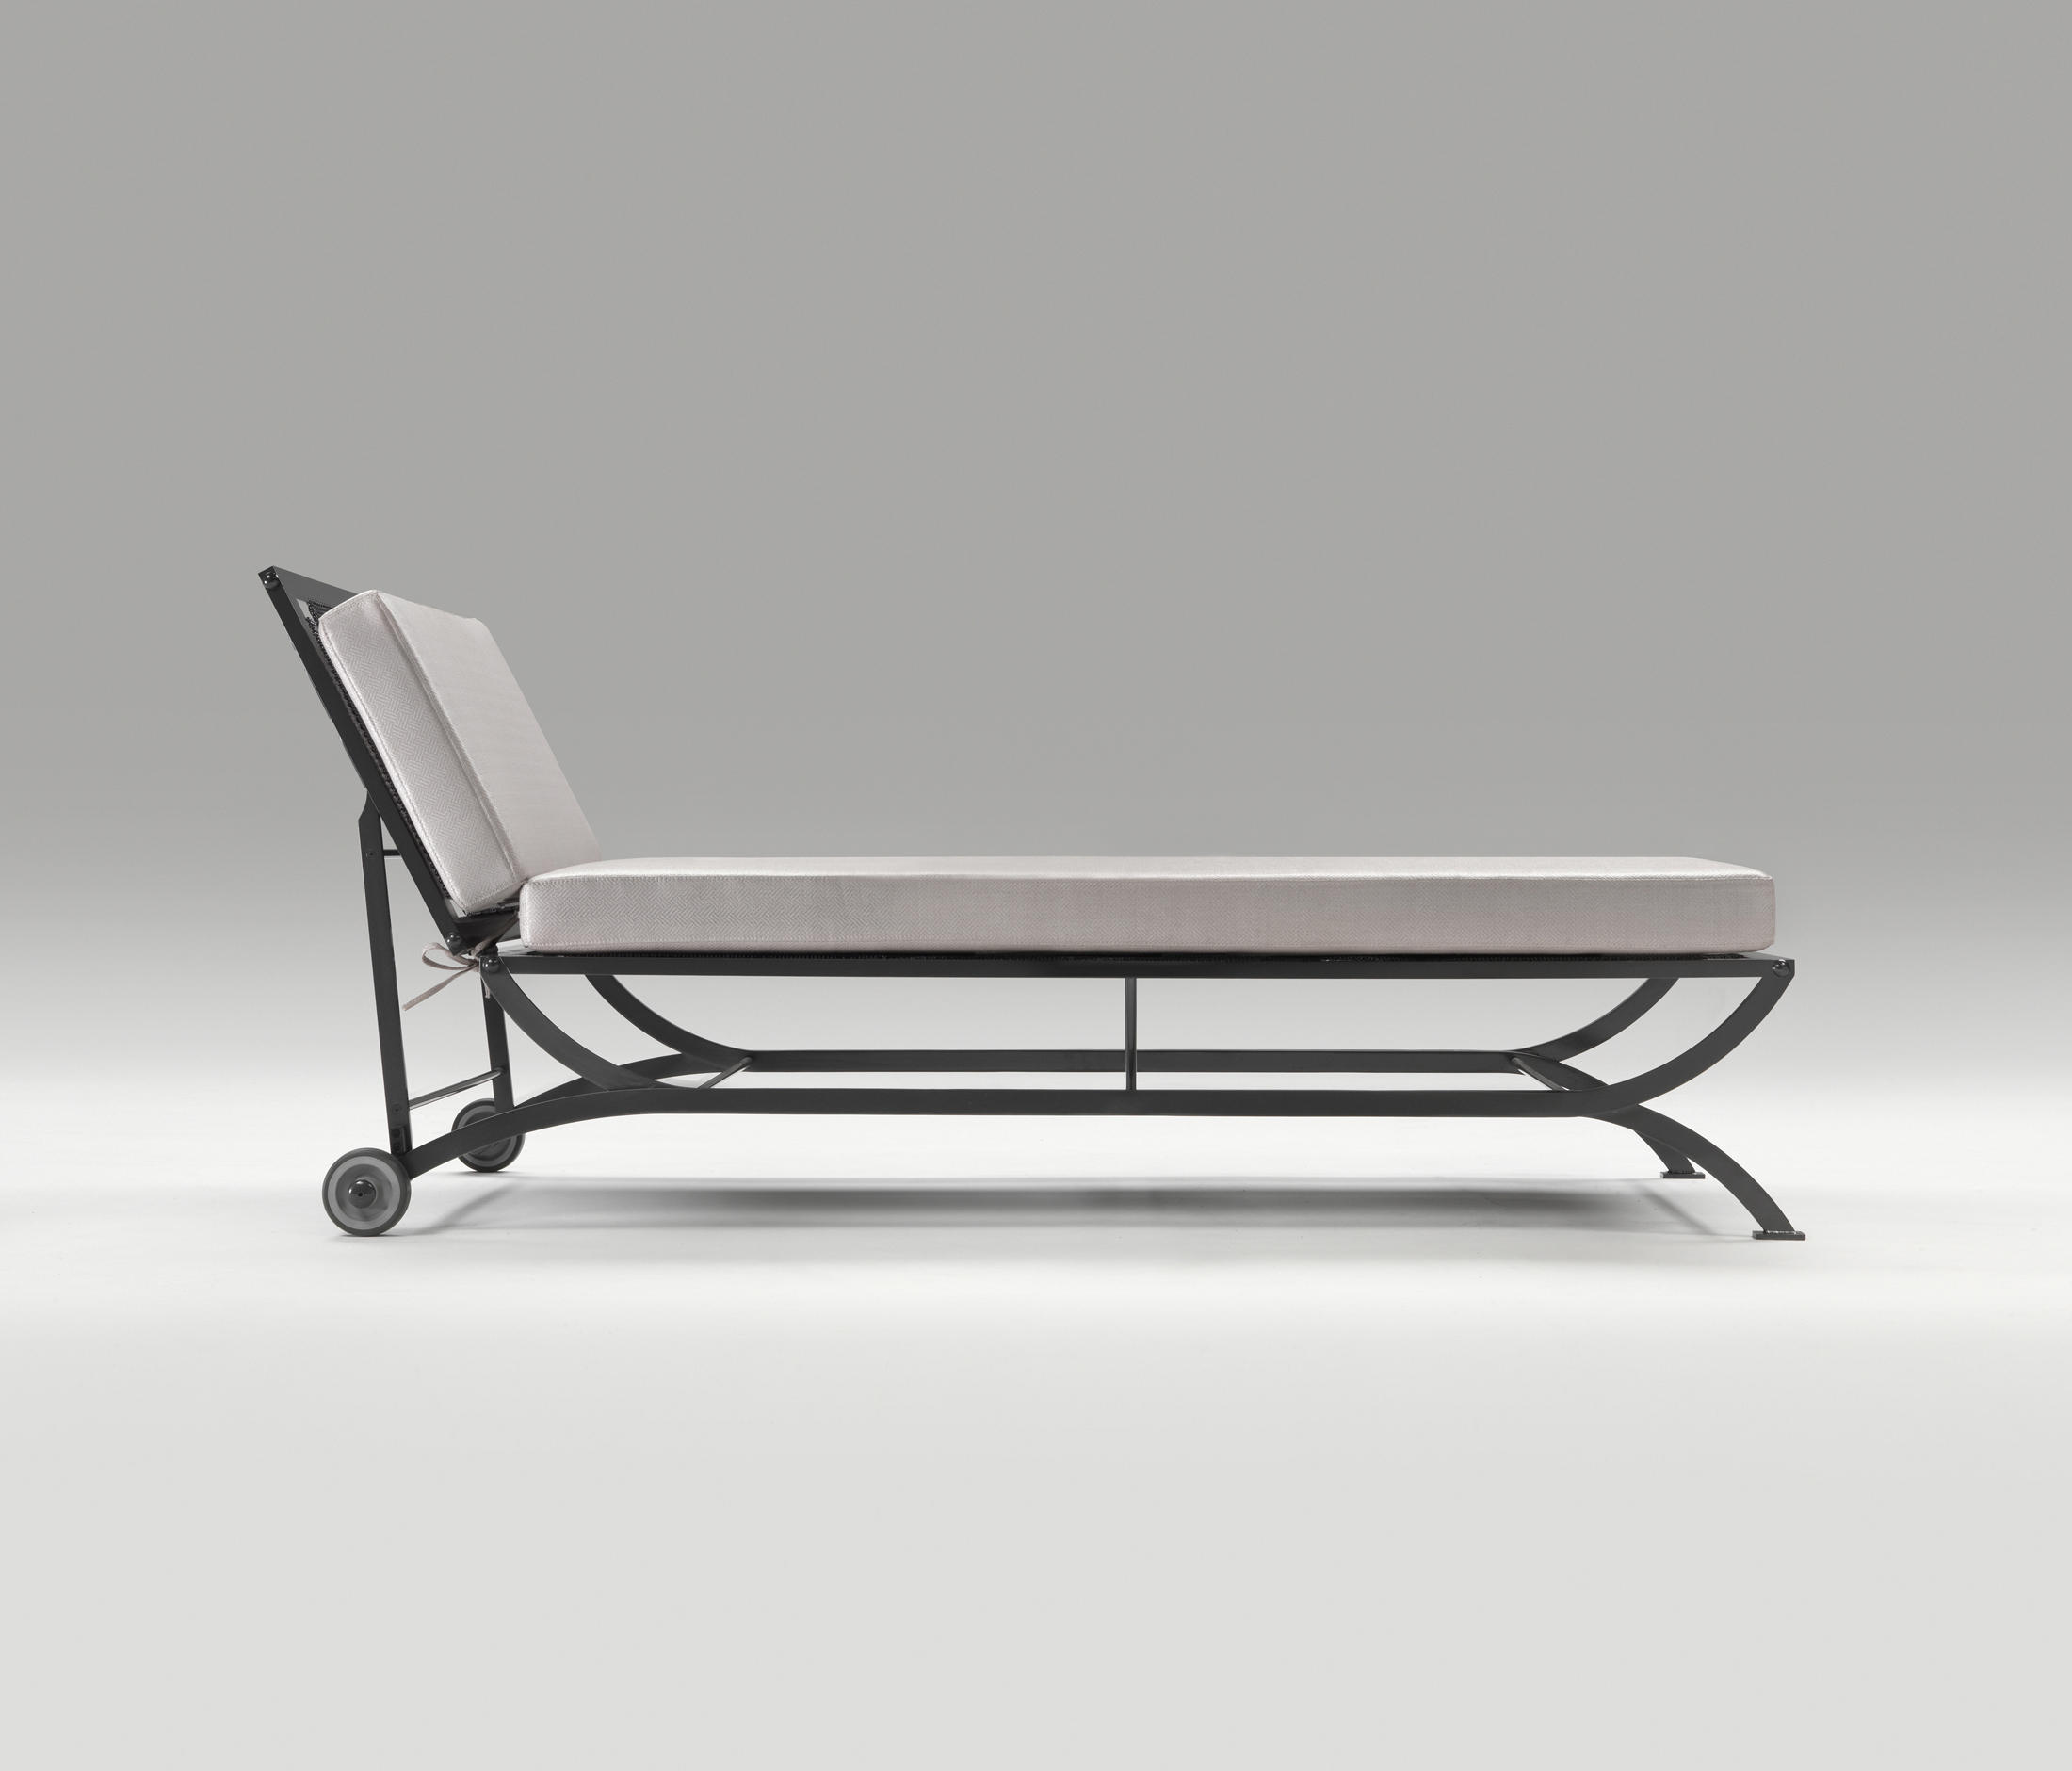 The Nonaro outdoor chaise from 1962 - part of an extensive outdoor collection including armchair, sofa, low table and stool being relaunched by B&B Italia.